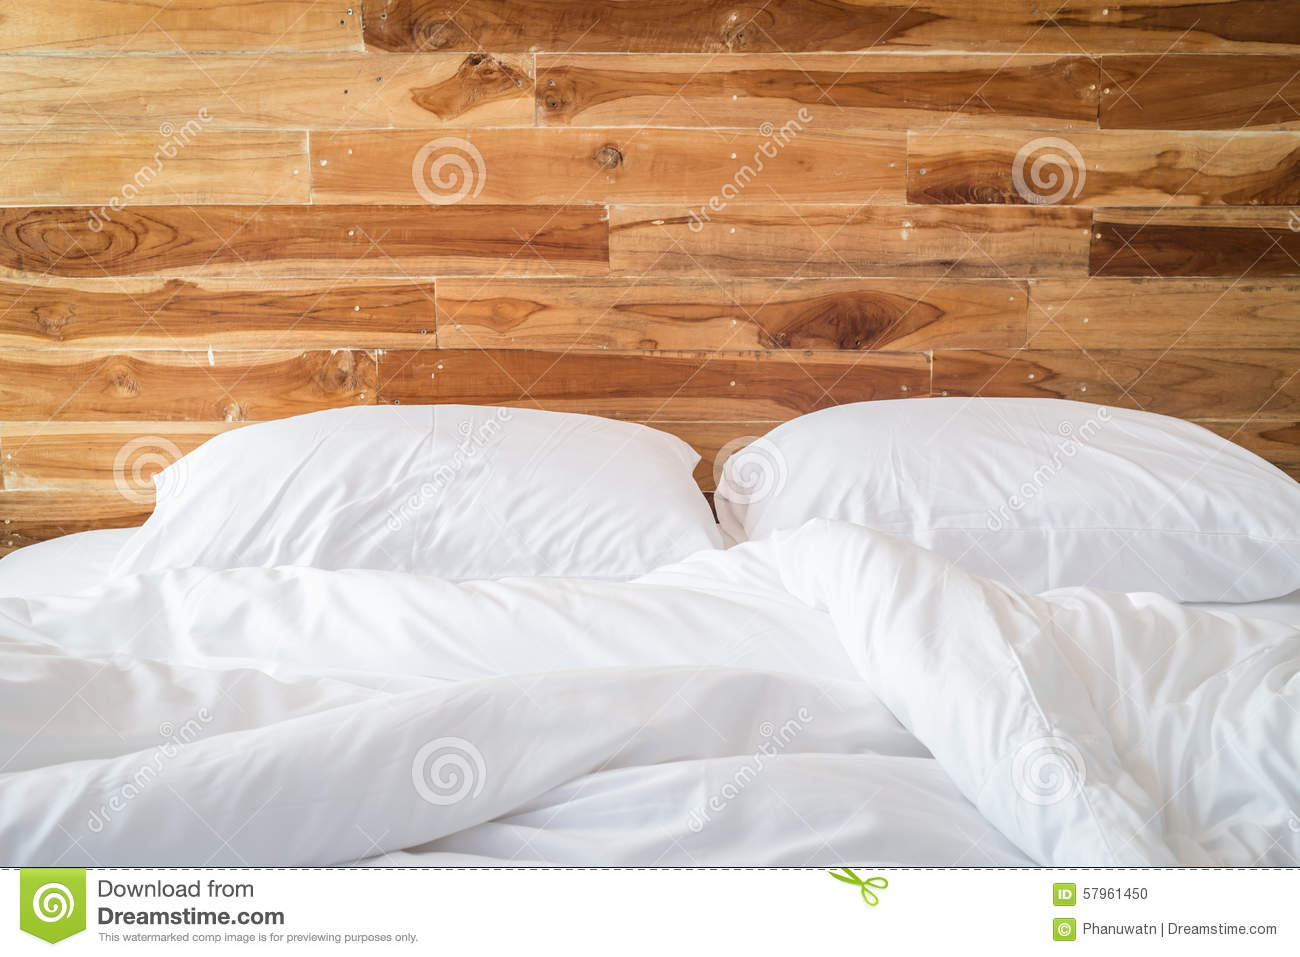 White Bedding Sheets And Pillow Messy Bed Concept Stock